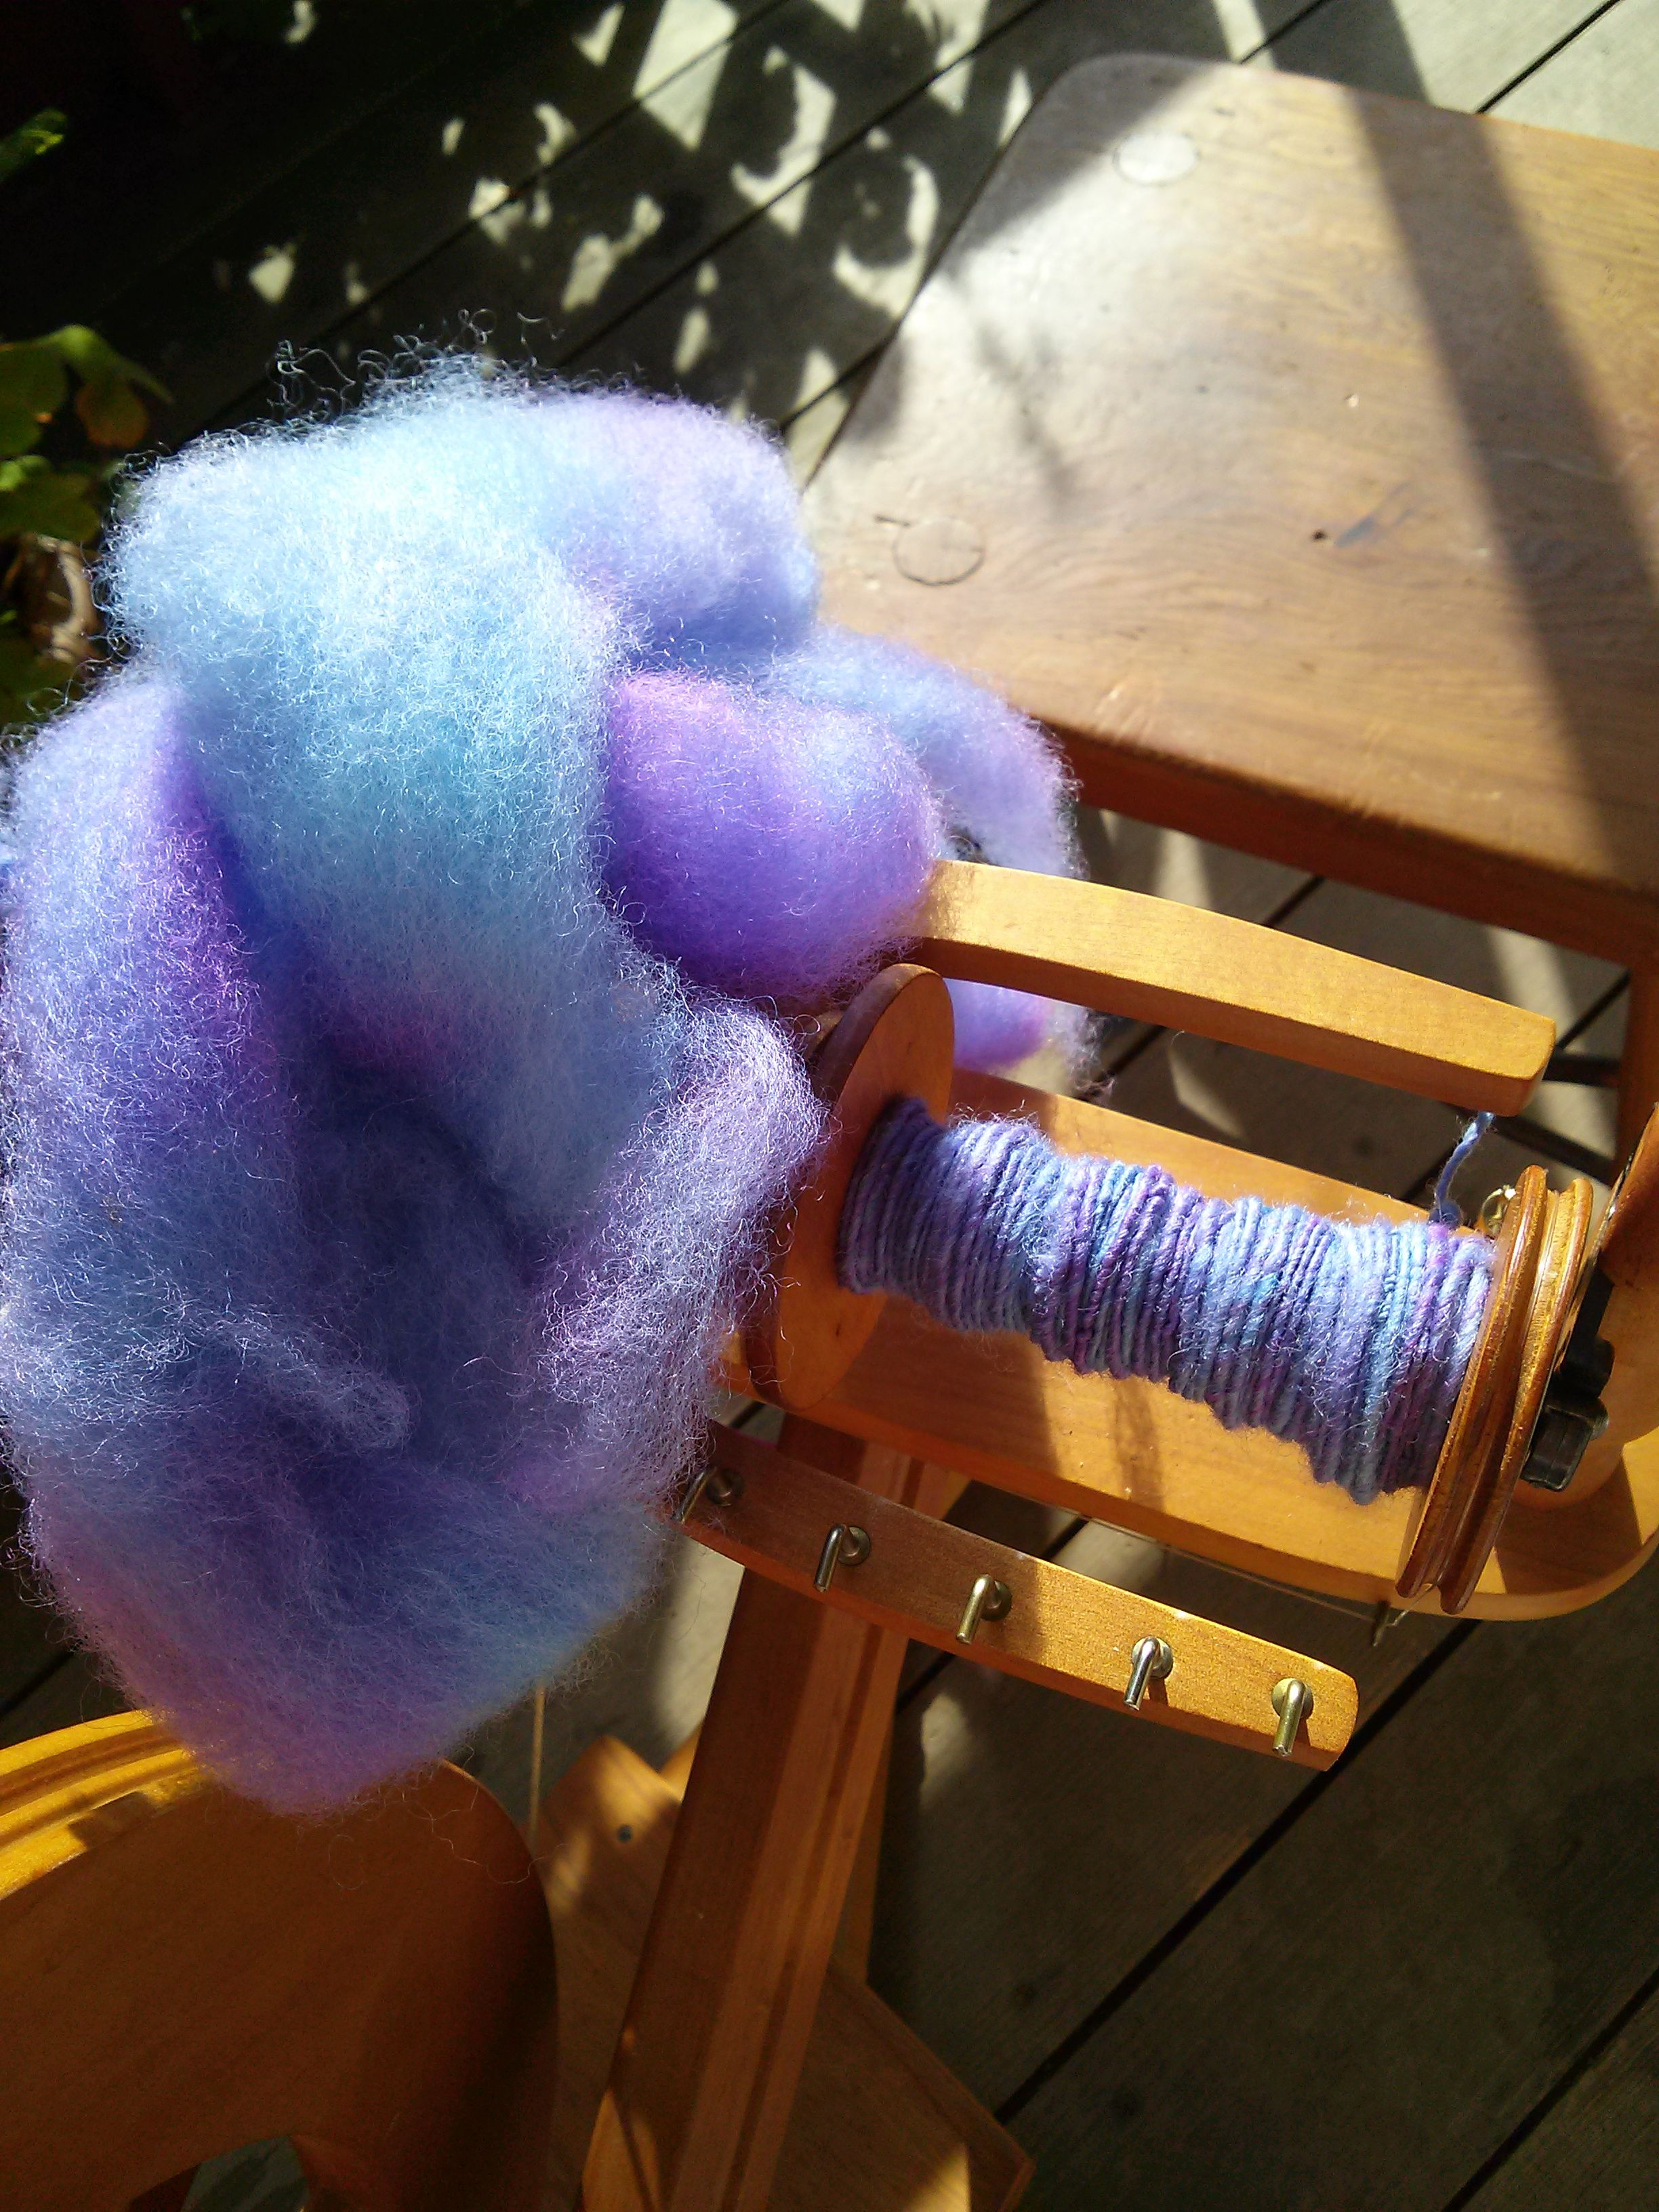 Dyeing Wool with Easter Egg dyes. Its easy and fun, just